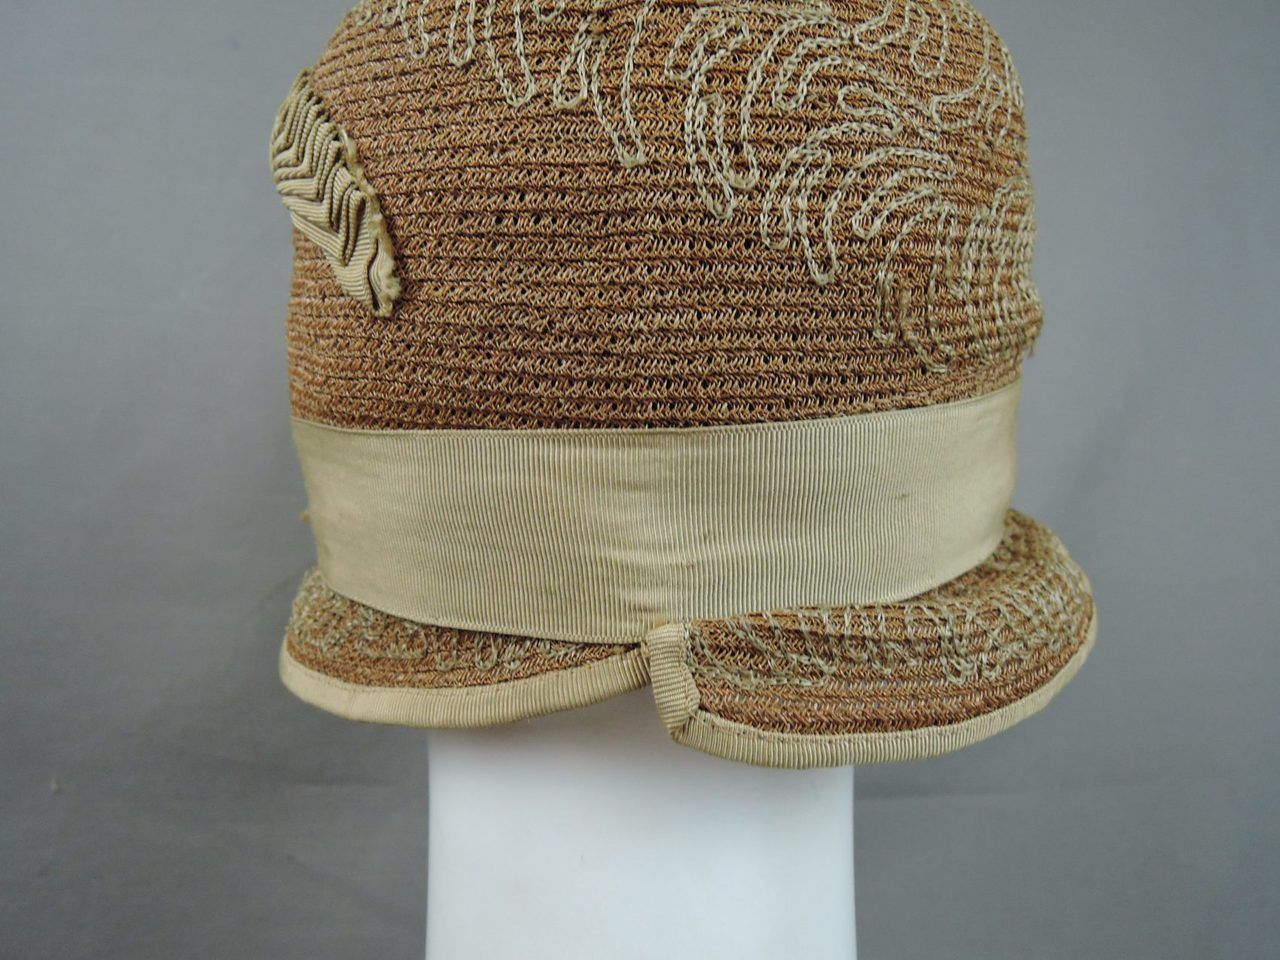 Vintage 1920s Straw Cloche Hat, Ribbons and Embroidery, fits 21 inch head